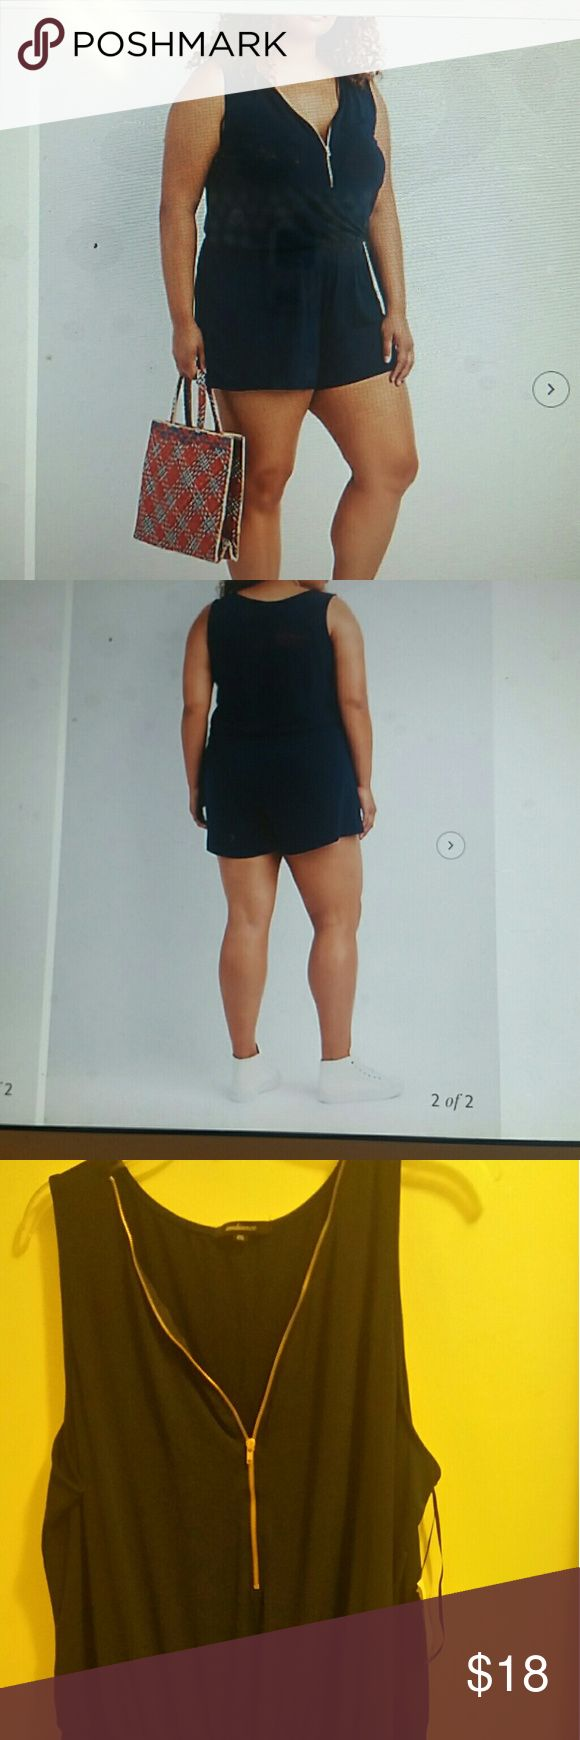 """Plus size zip-up sleeveless navy blue romper This romper zips up in front to create a V-neck line, the shorts has a covered elastic waistband. Romper measures approximately 35"""" long, 19"""" at hip laying flat with a 3"""" inseam shorts from elastc waist 14"""" long Shorts"""